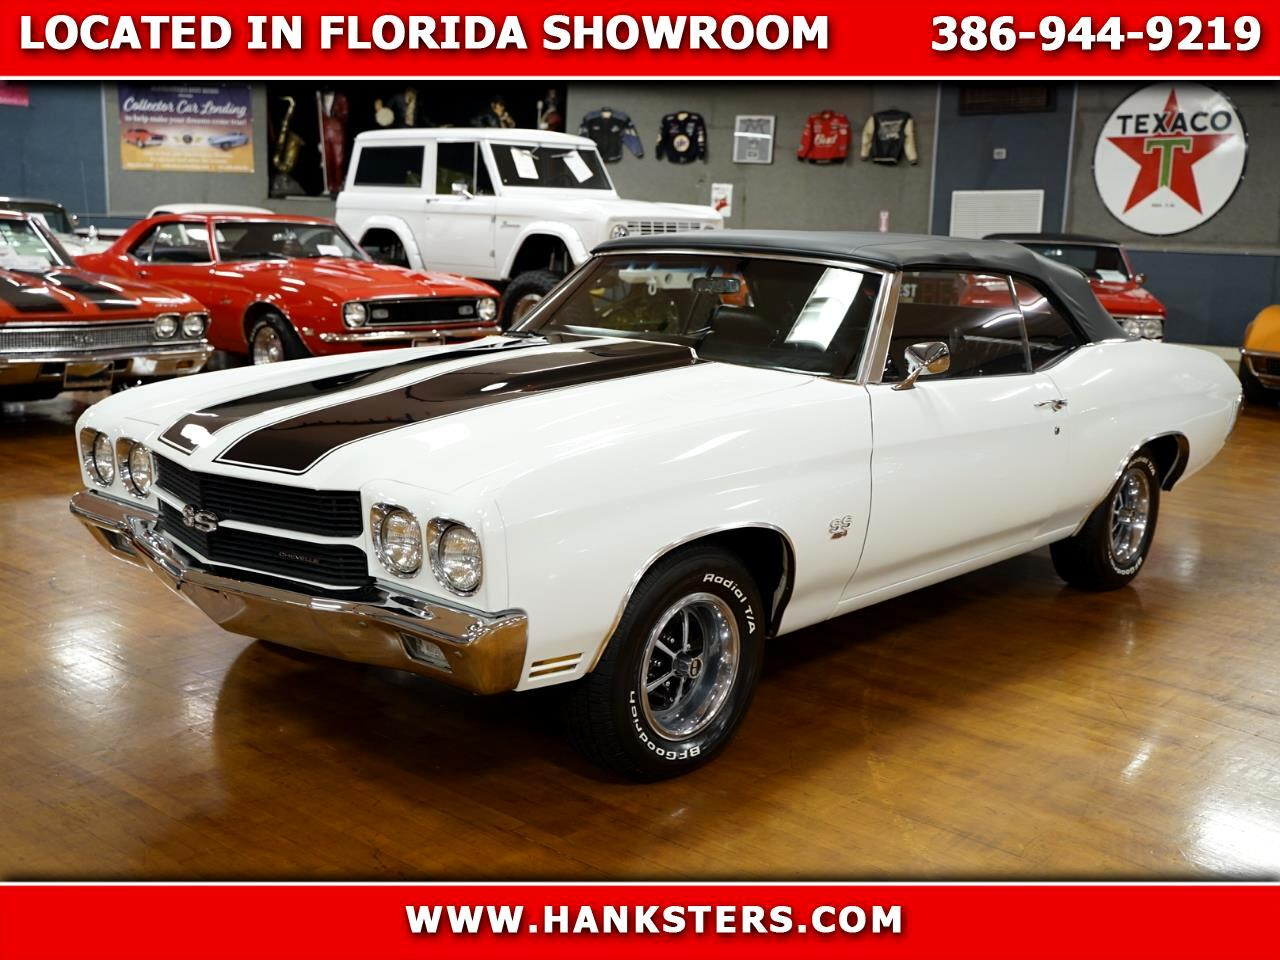 1970 Chevrolet Chevelle SS Style Convertible